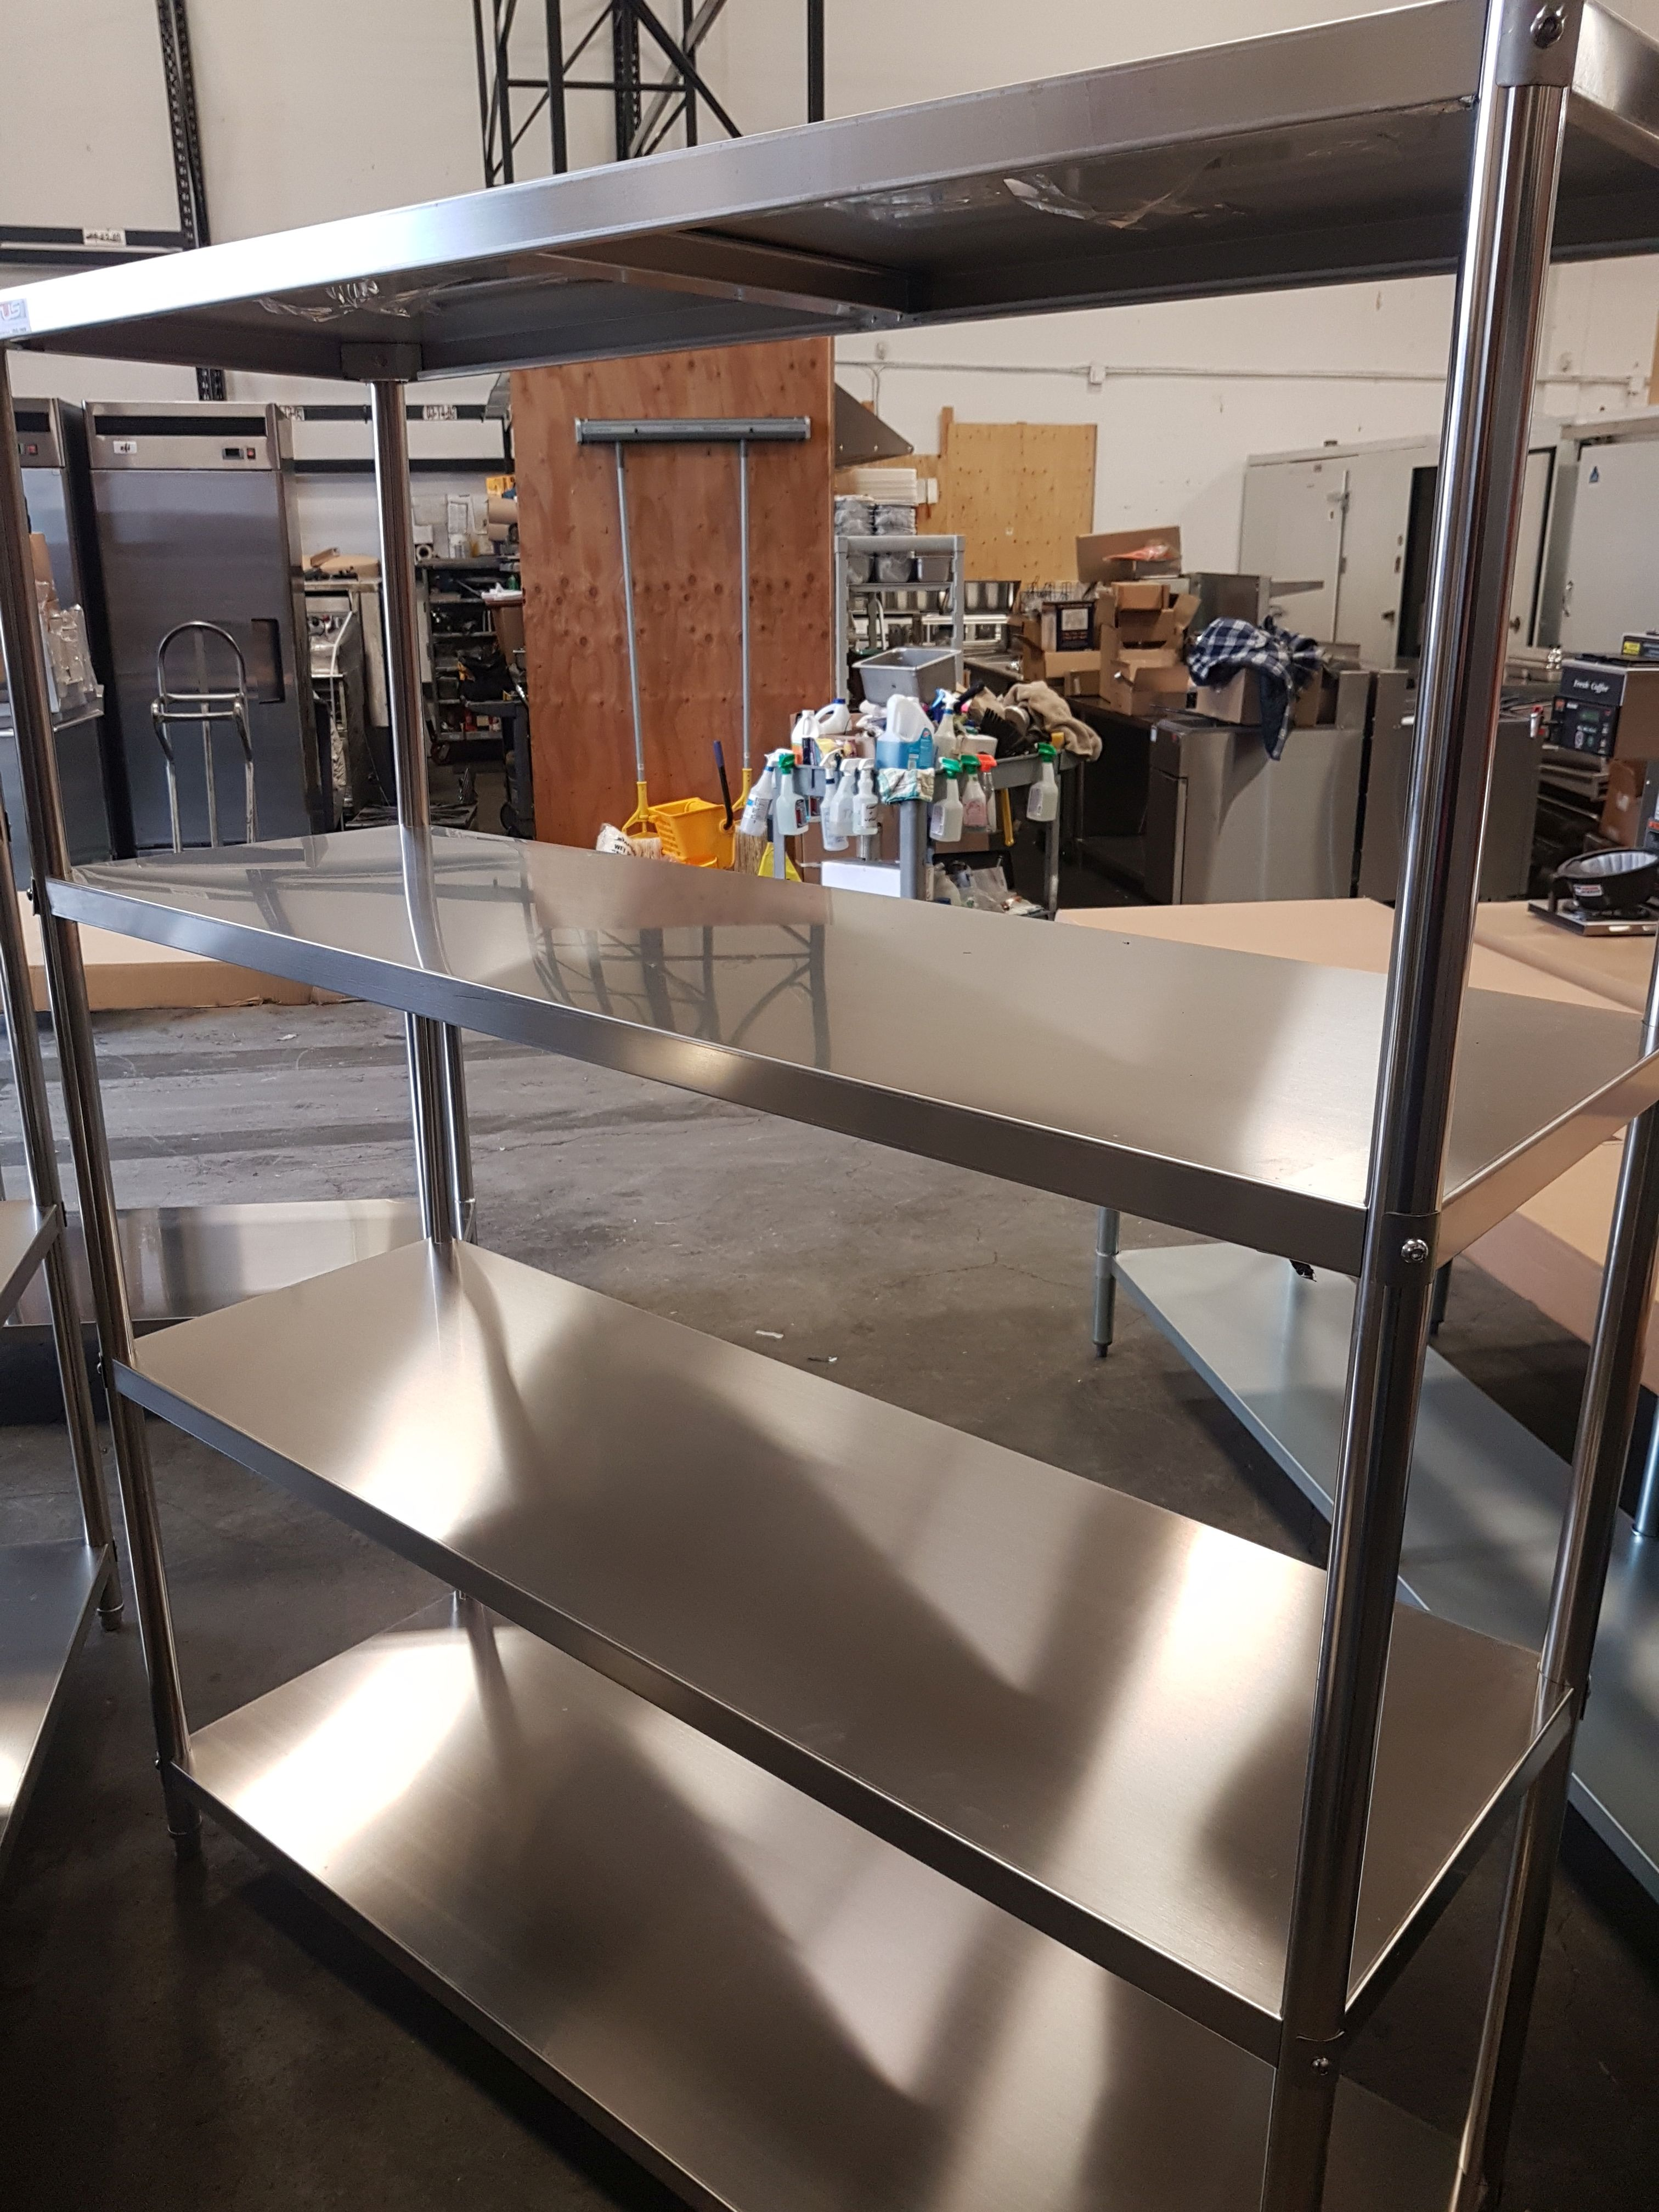 """Lot 14 - 19.5"""" x 58.5"""" x 72"""" All Stainless 4 Shelf Unit - USSS-150050"""